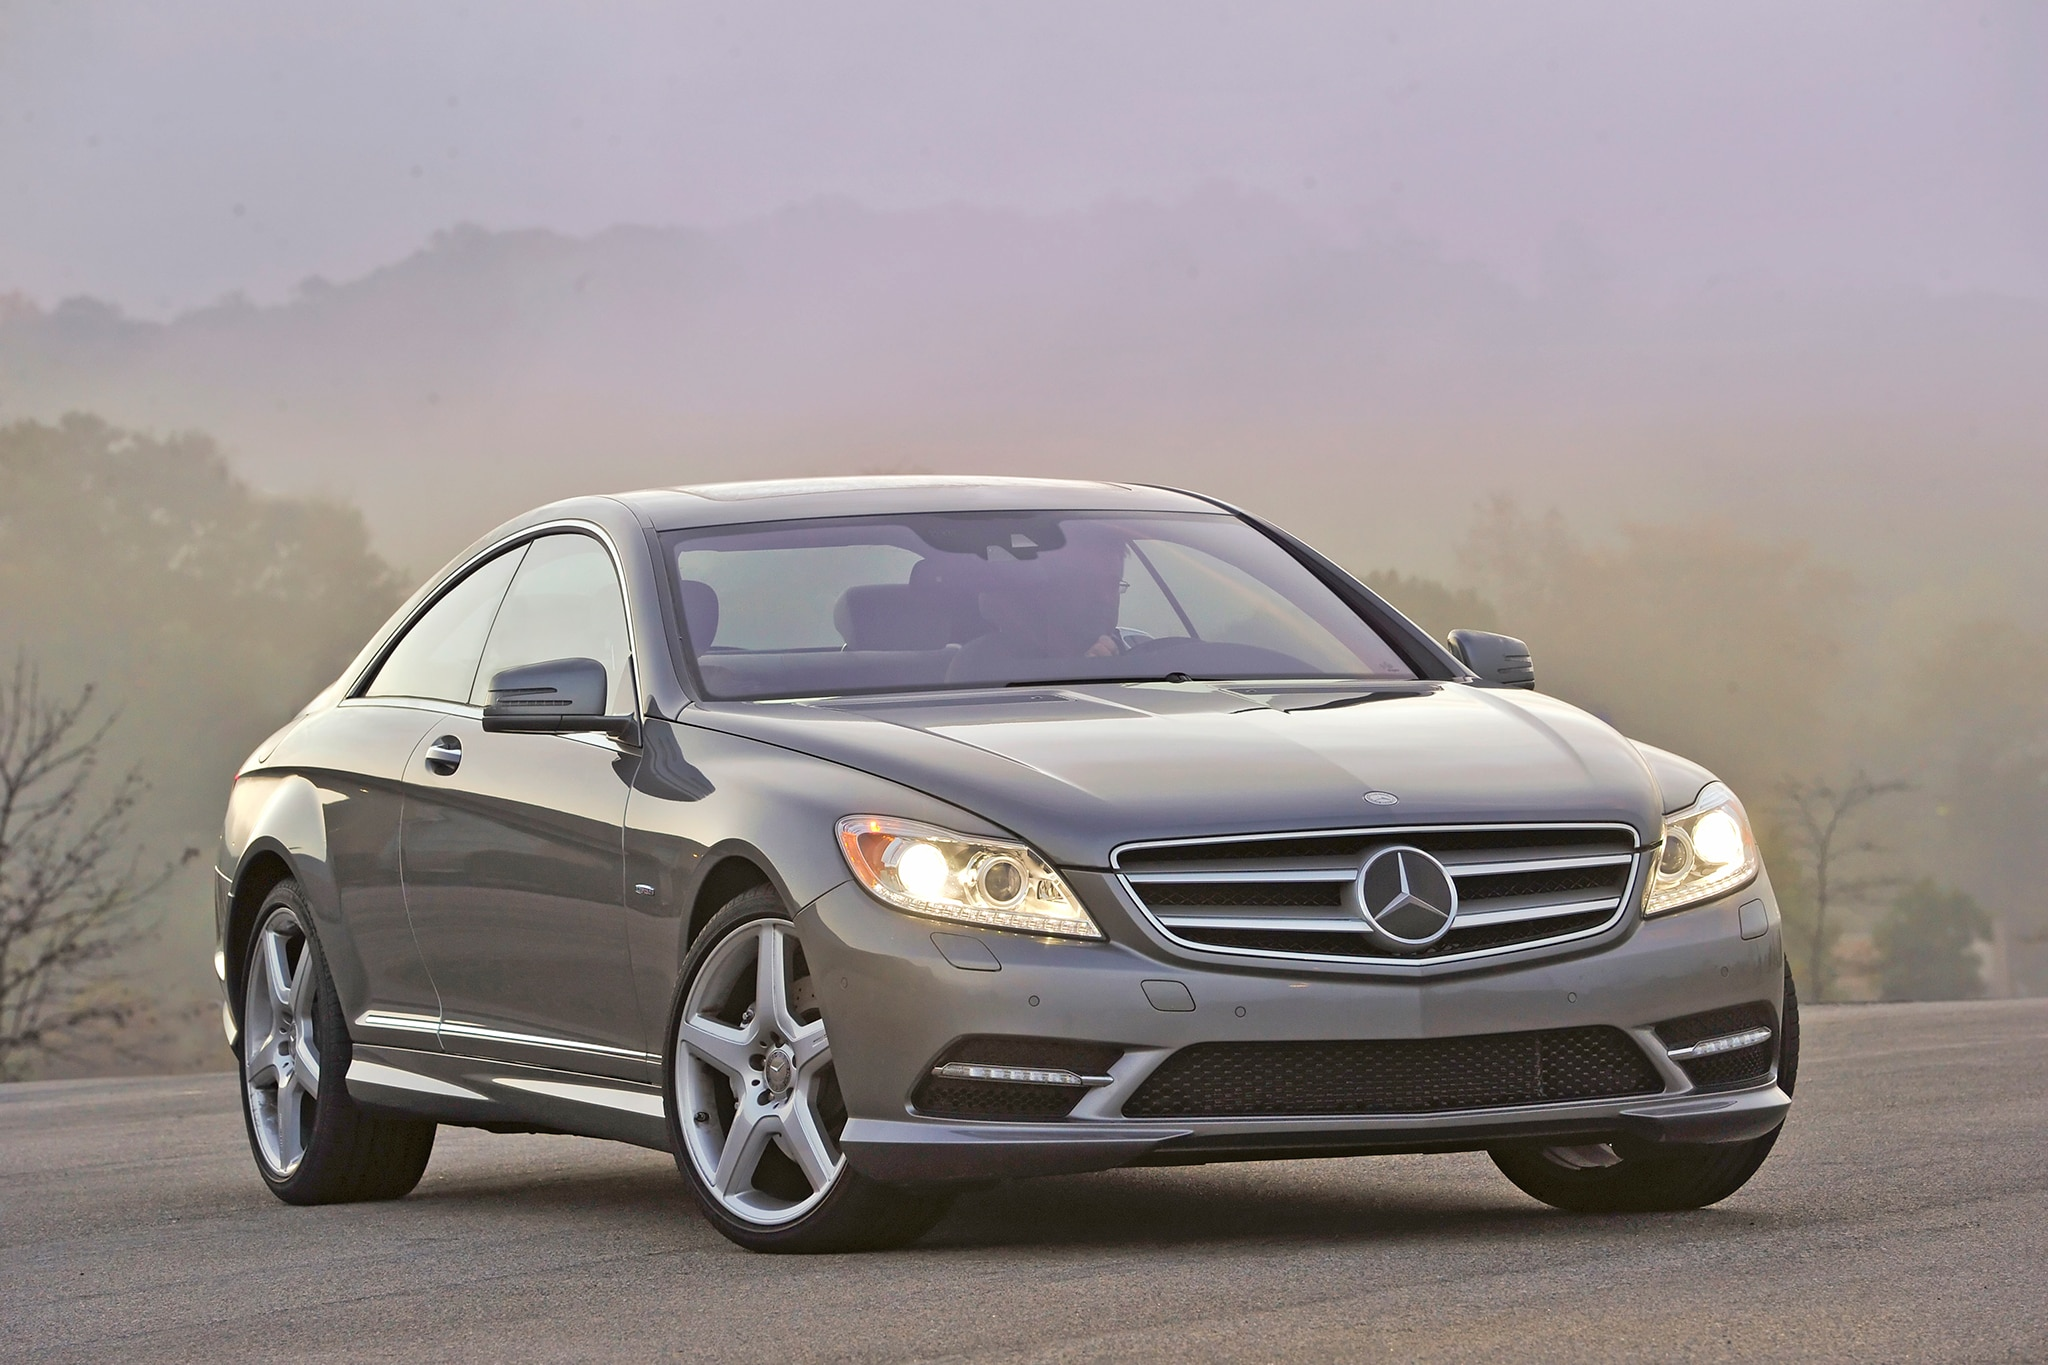 2008 Mercedes Benz CL65 AMG Latest News Features and Auto Show